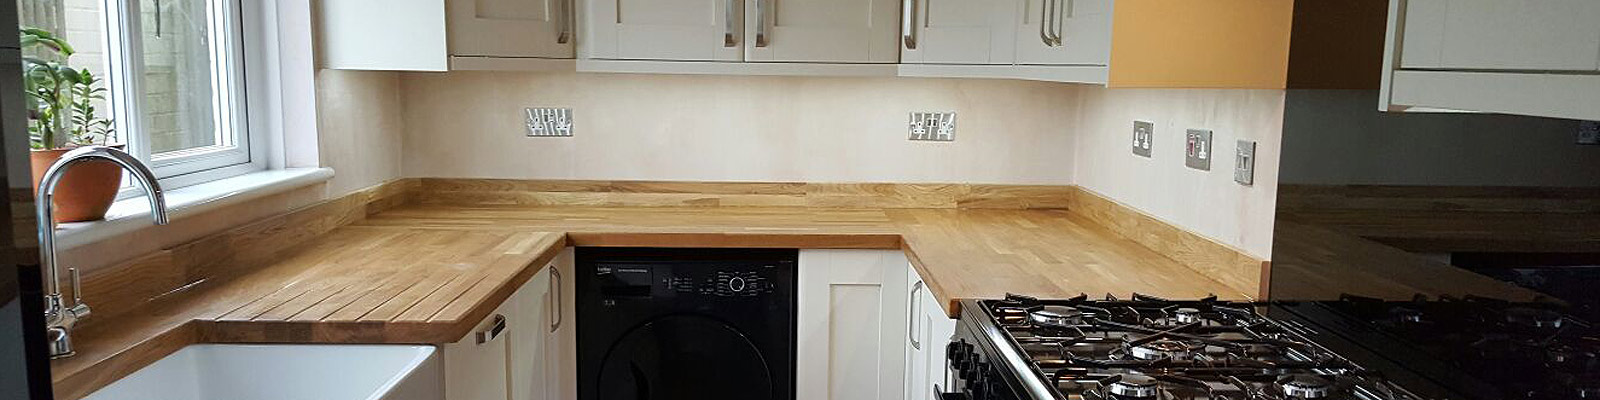 Kitchen Installers in Chichester